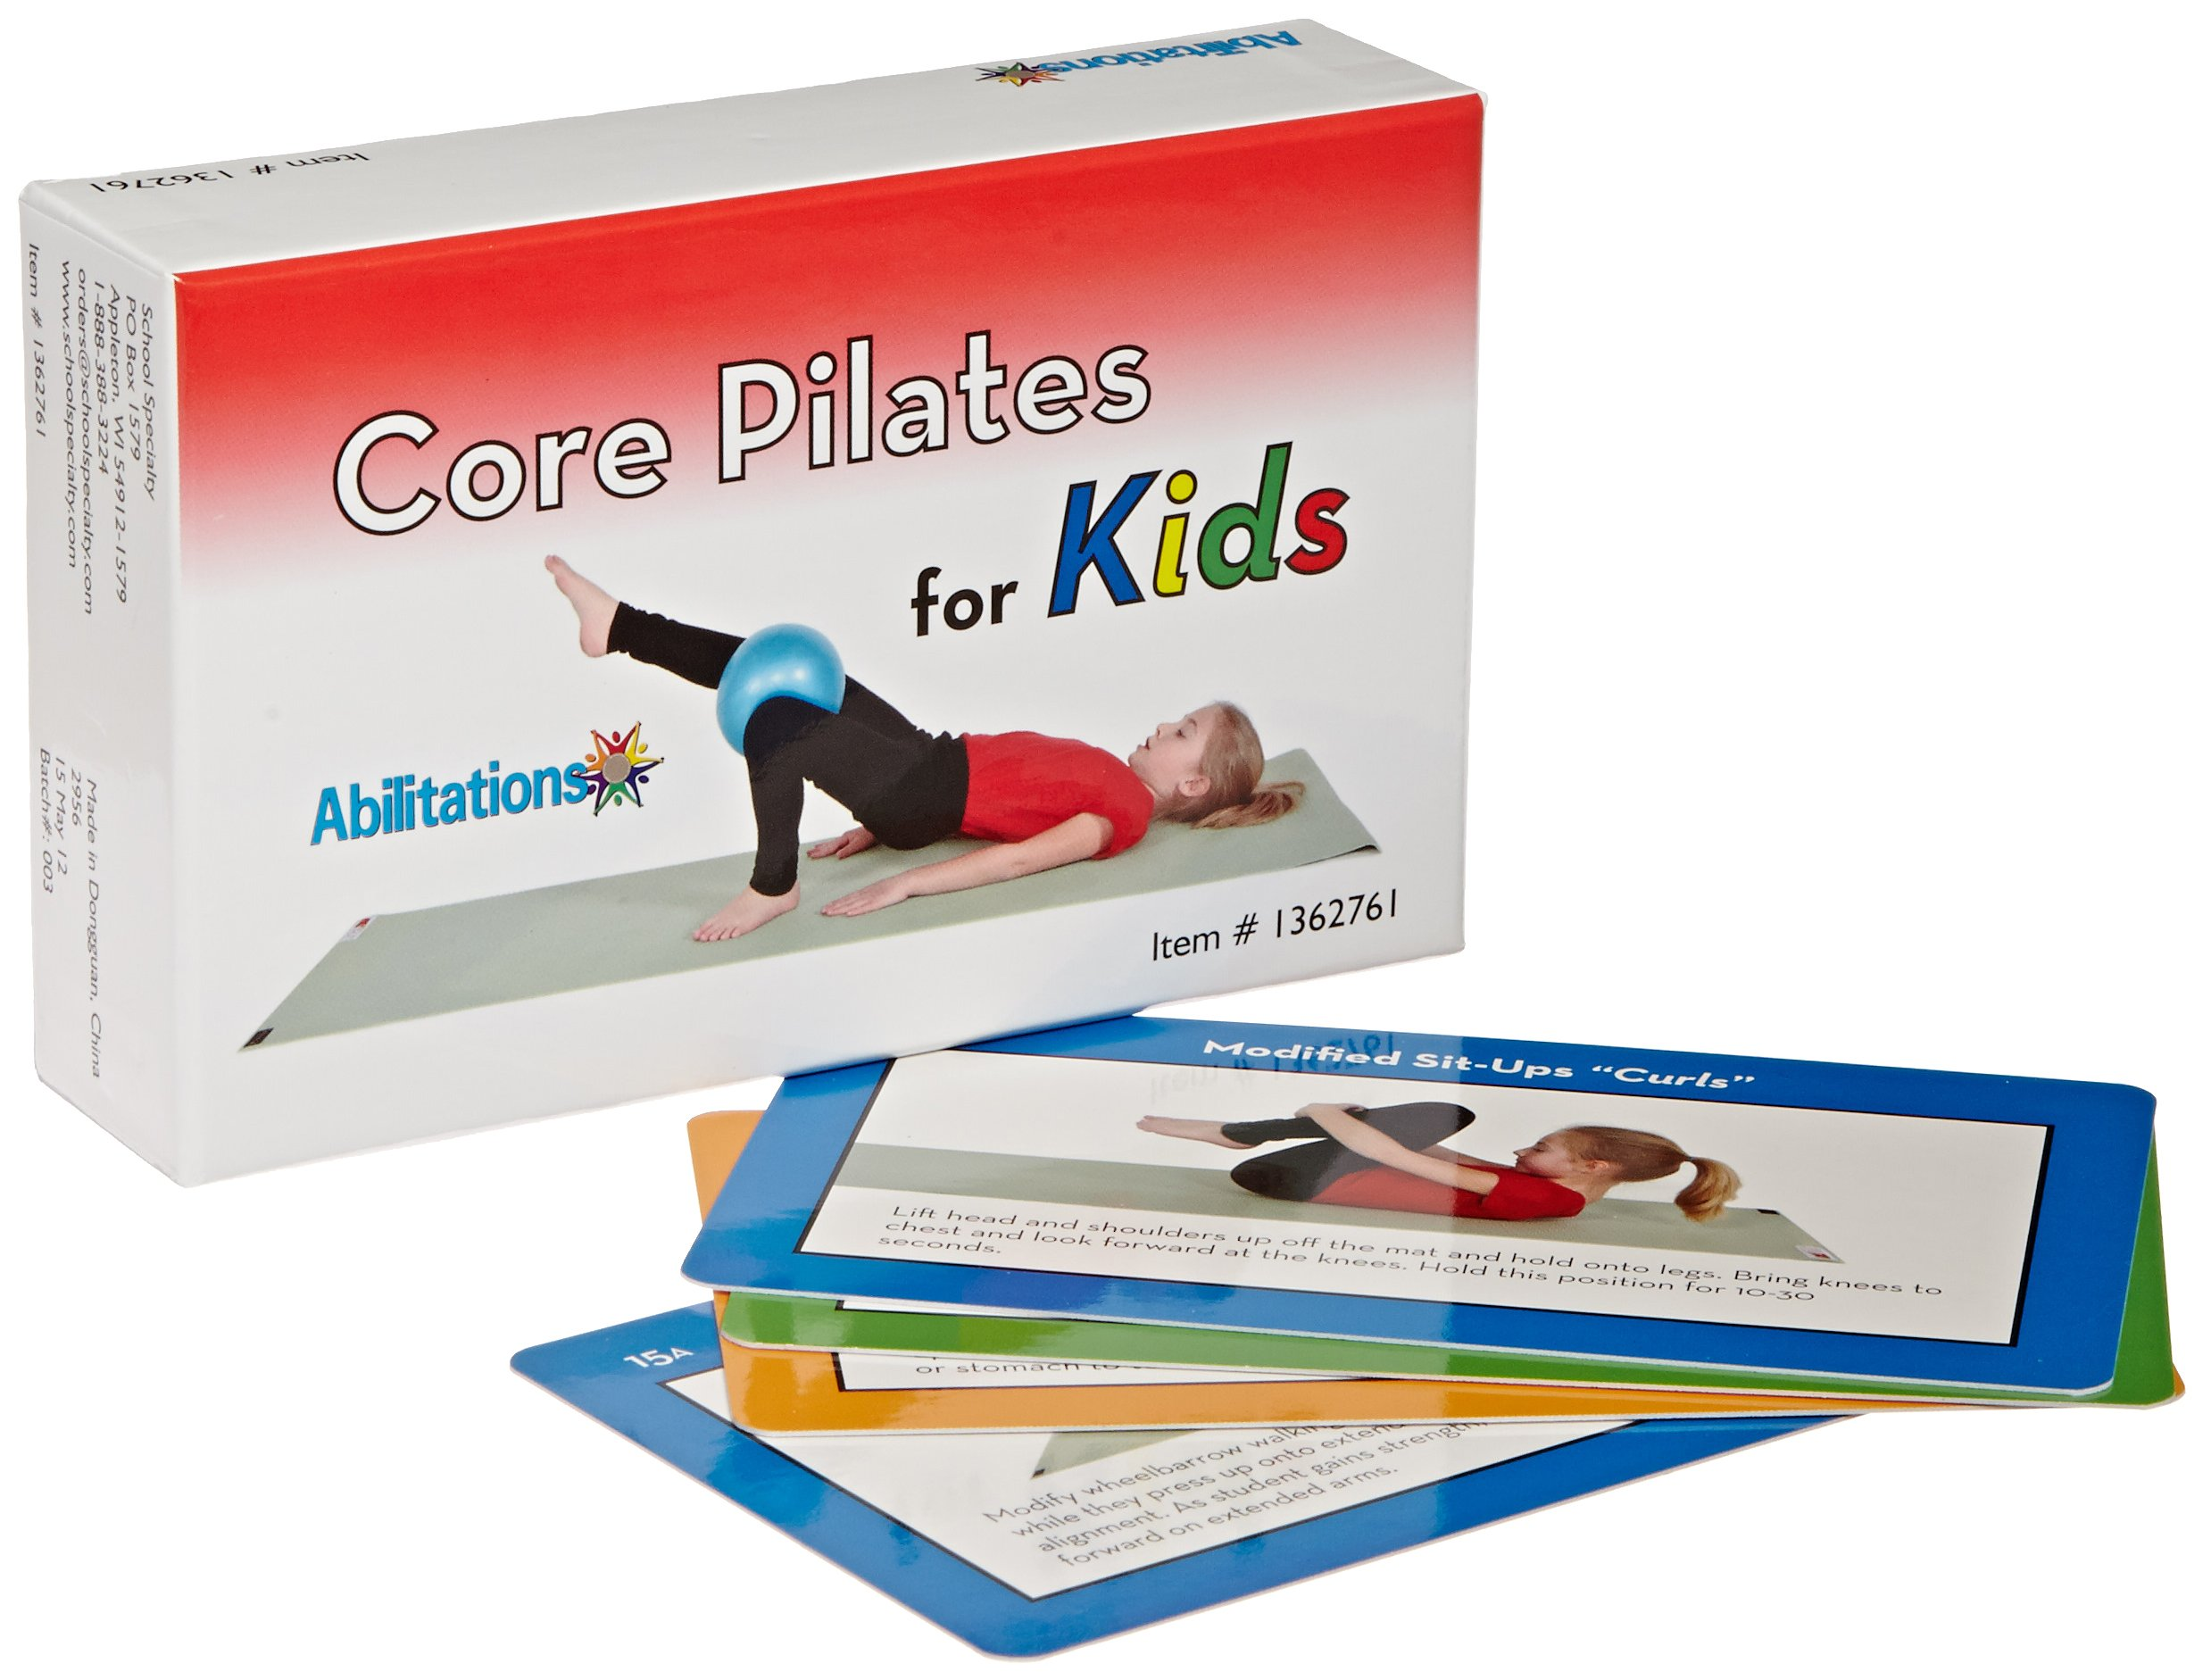 Sportime Core Pilates for Kids Exercise Cards, Set of 56 - 1362761